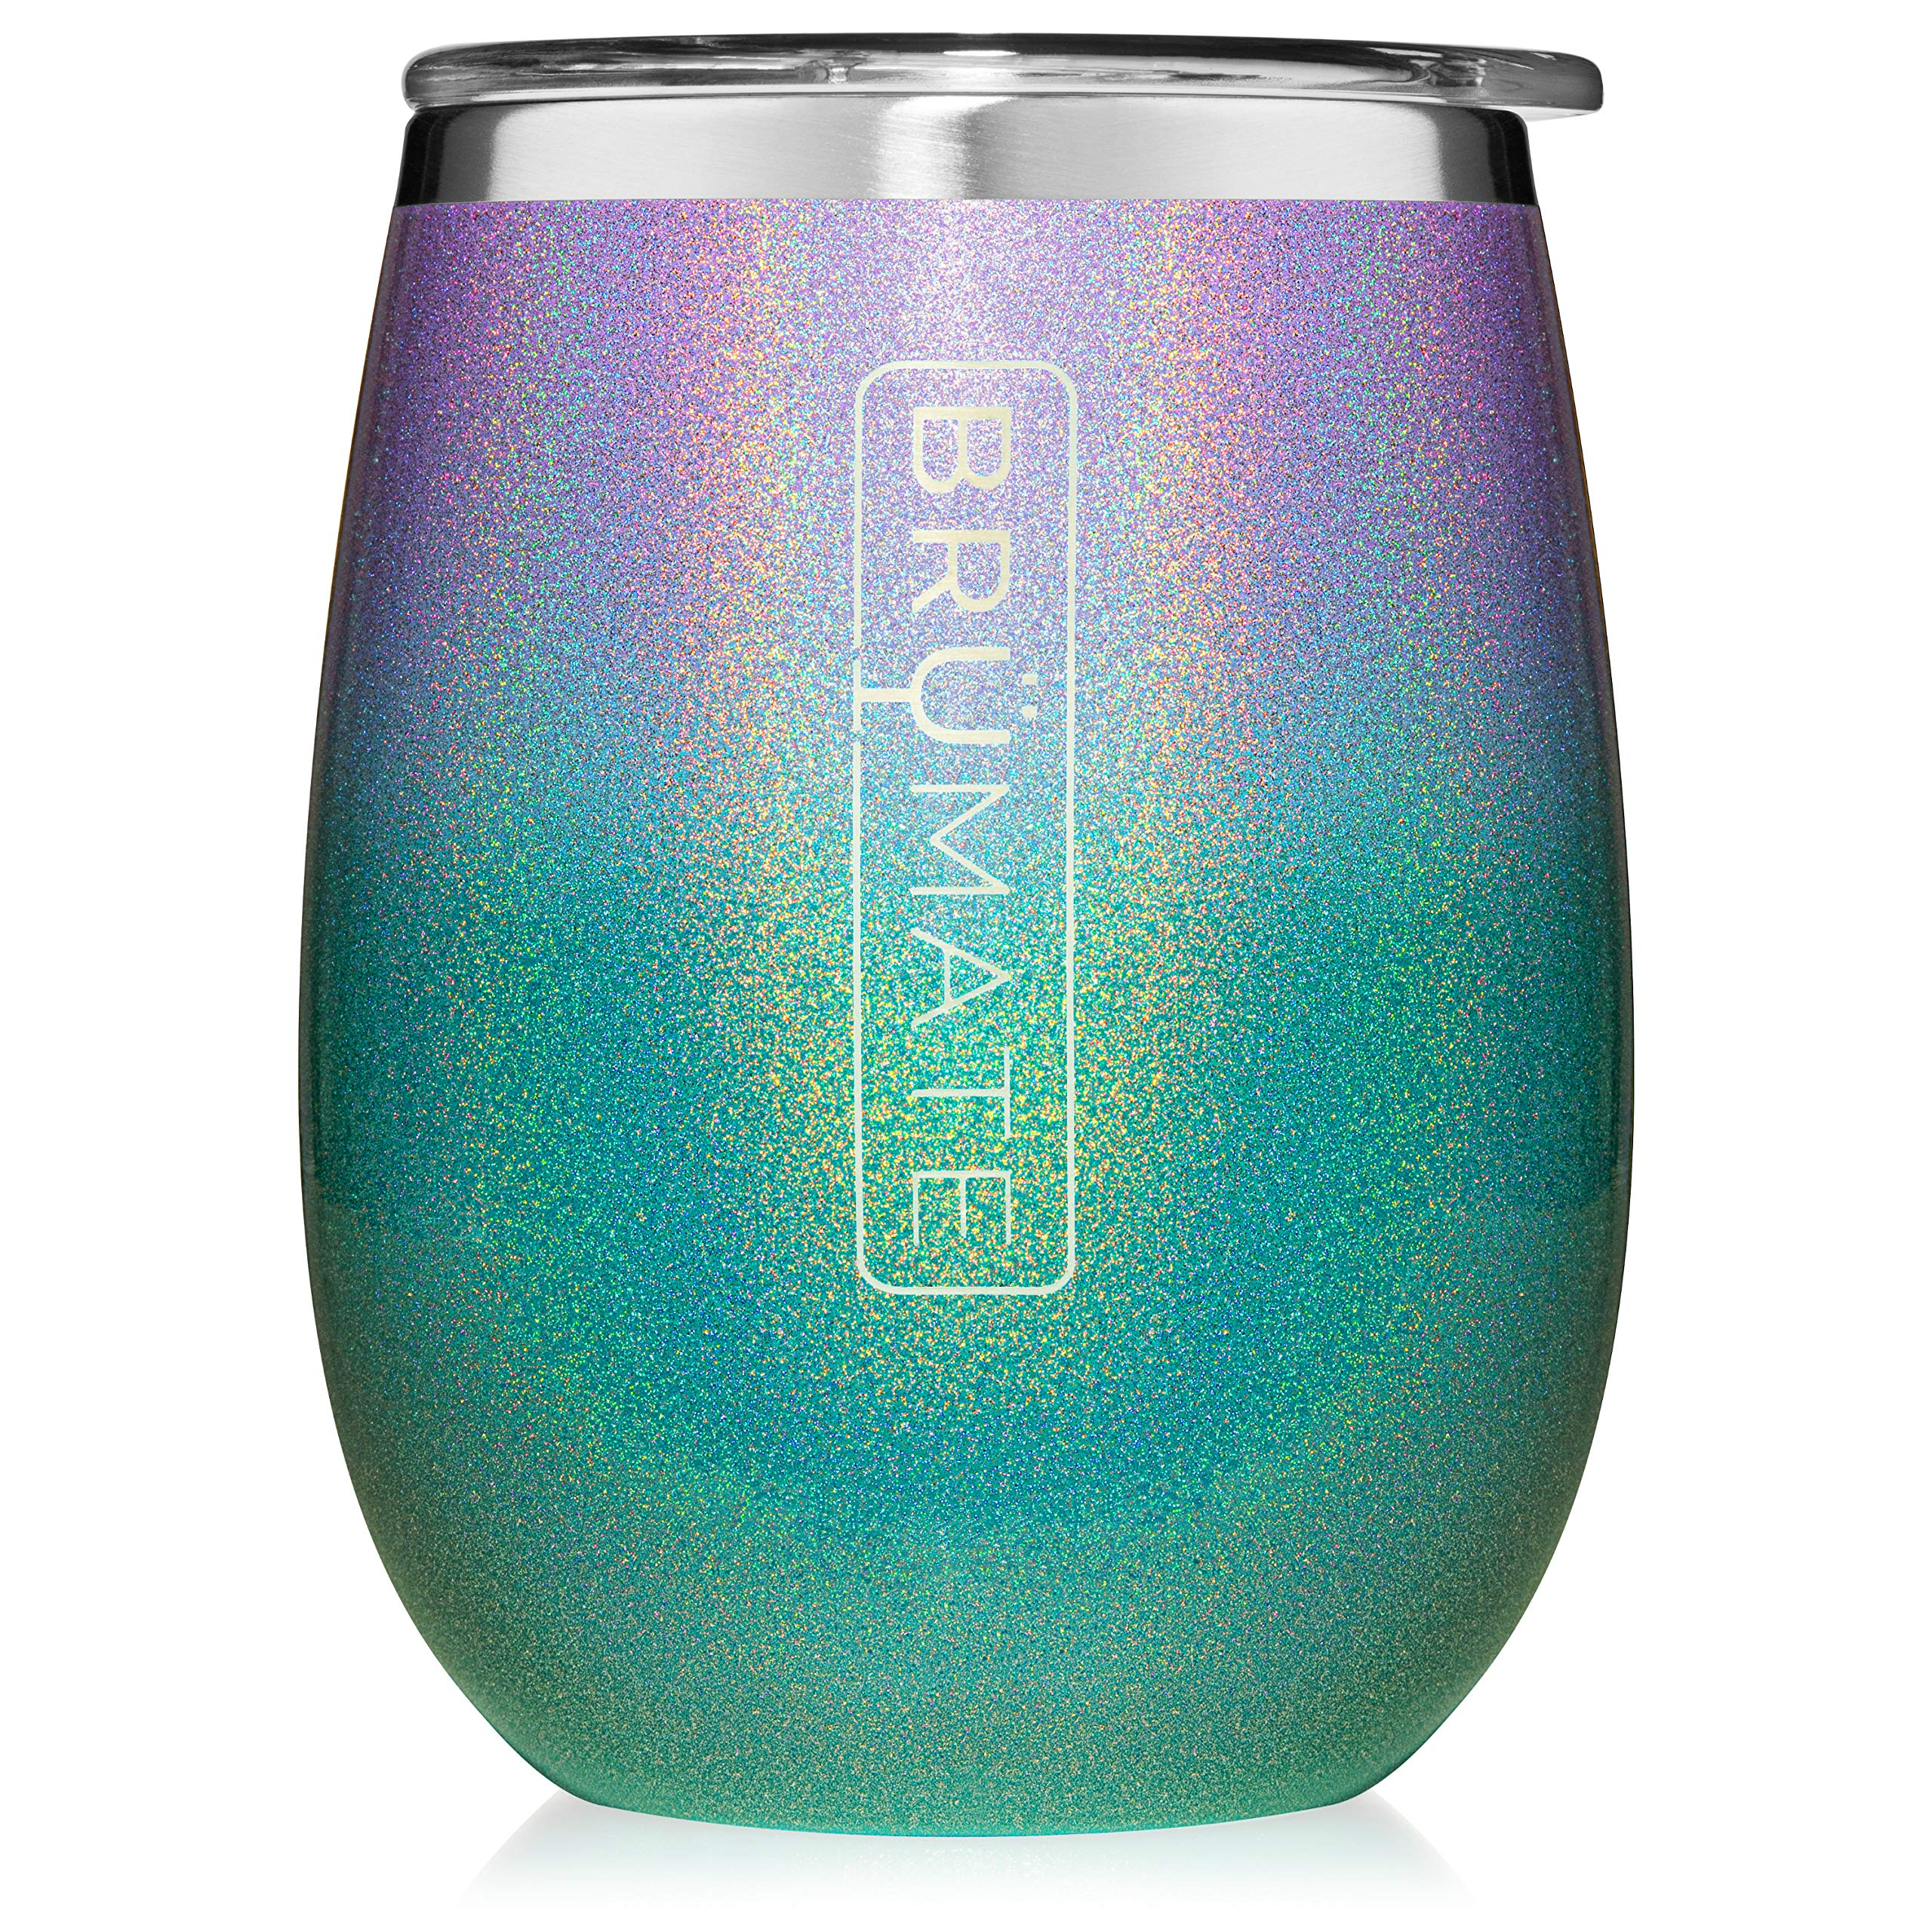 BrüMate Uncork'd XL 14oz Wine Glass Tumbler With Splash-proof Lid - Made With Vacuum Insulated Stainless Steel (Glitter Mermaid)